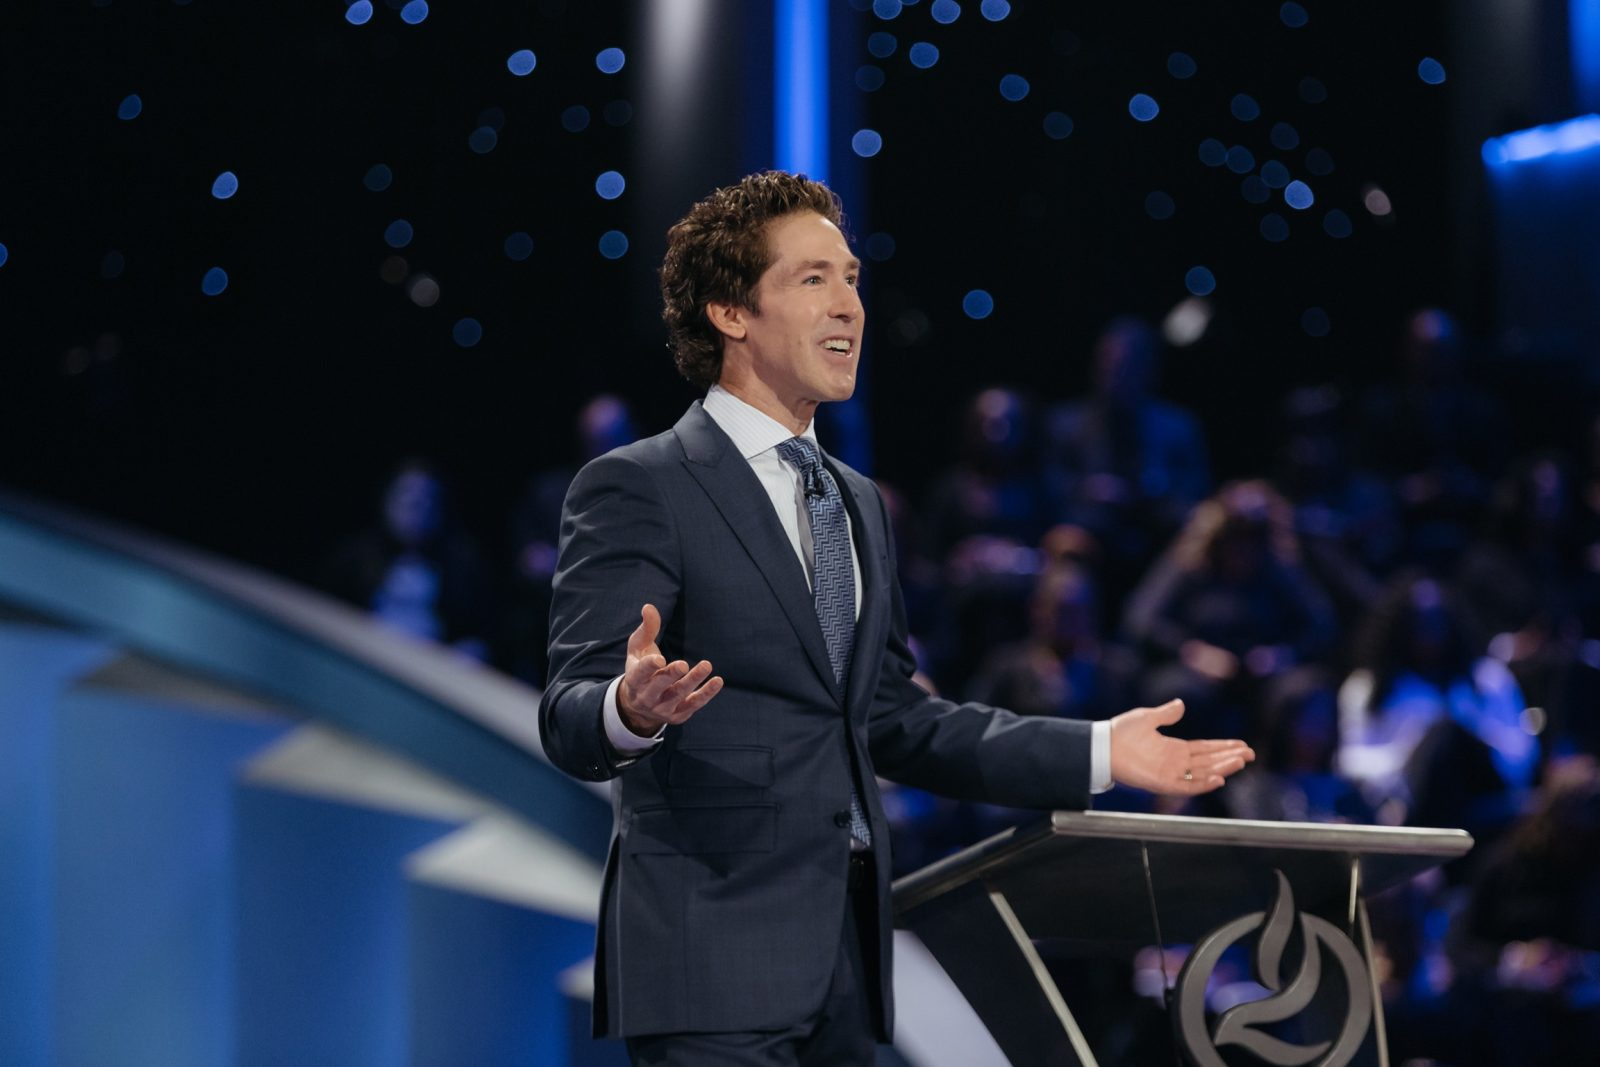 Joel Osteen Sermon Today: Take That Step of Faith